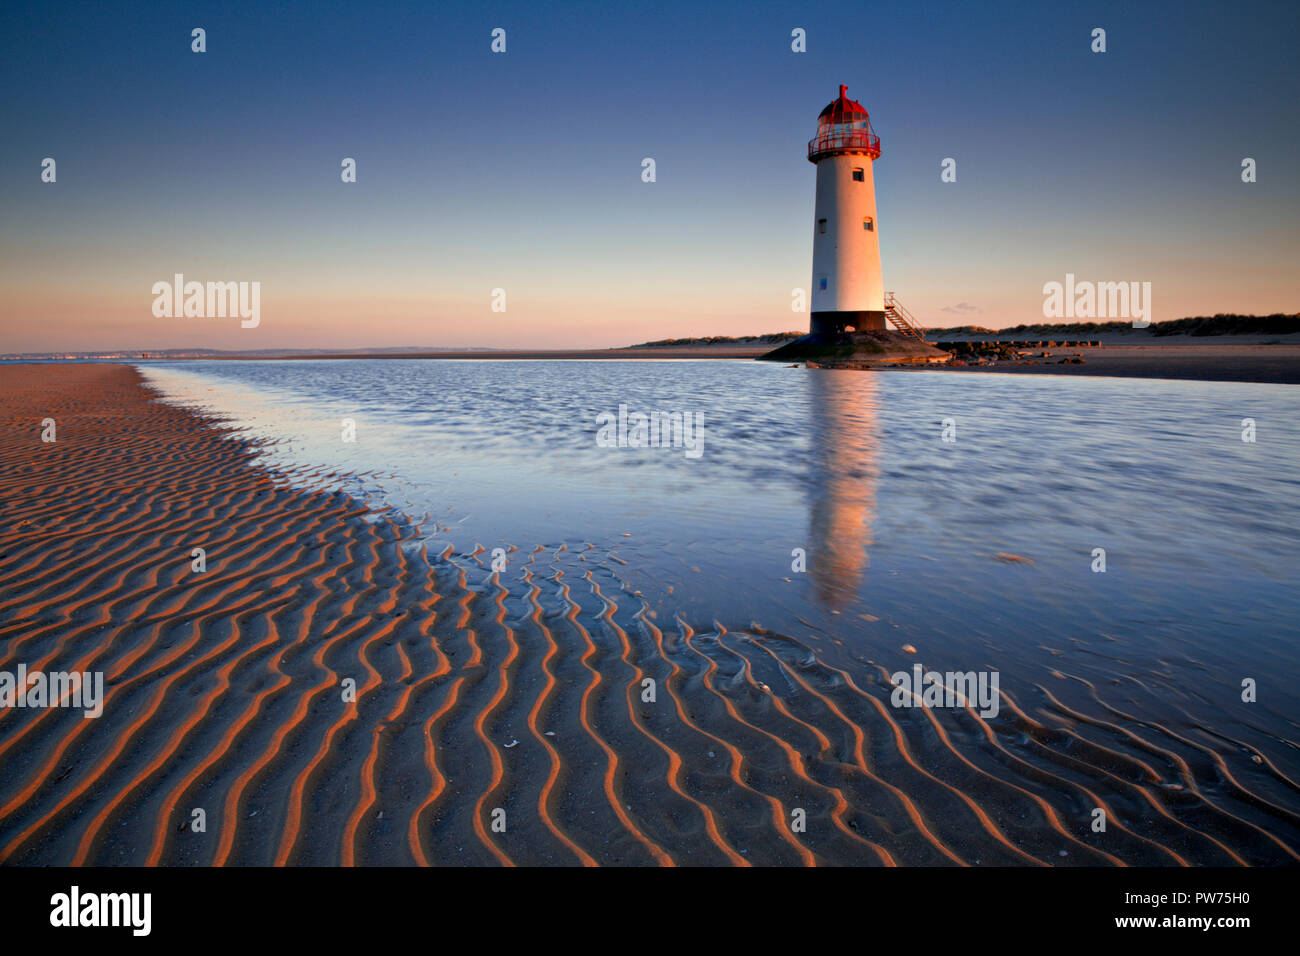 Point of Ayr lighthouse on Talacre beach, North Wales coast reflecting in a tidal pool - Stock Image